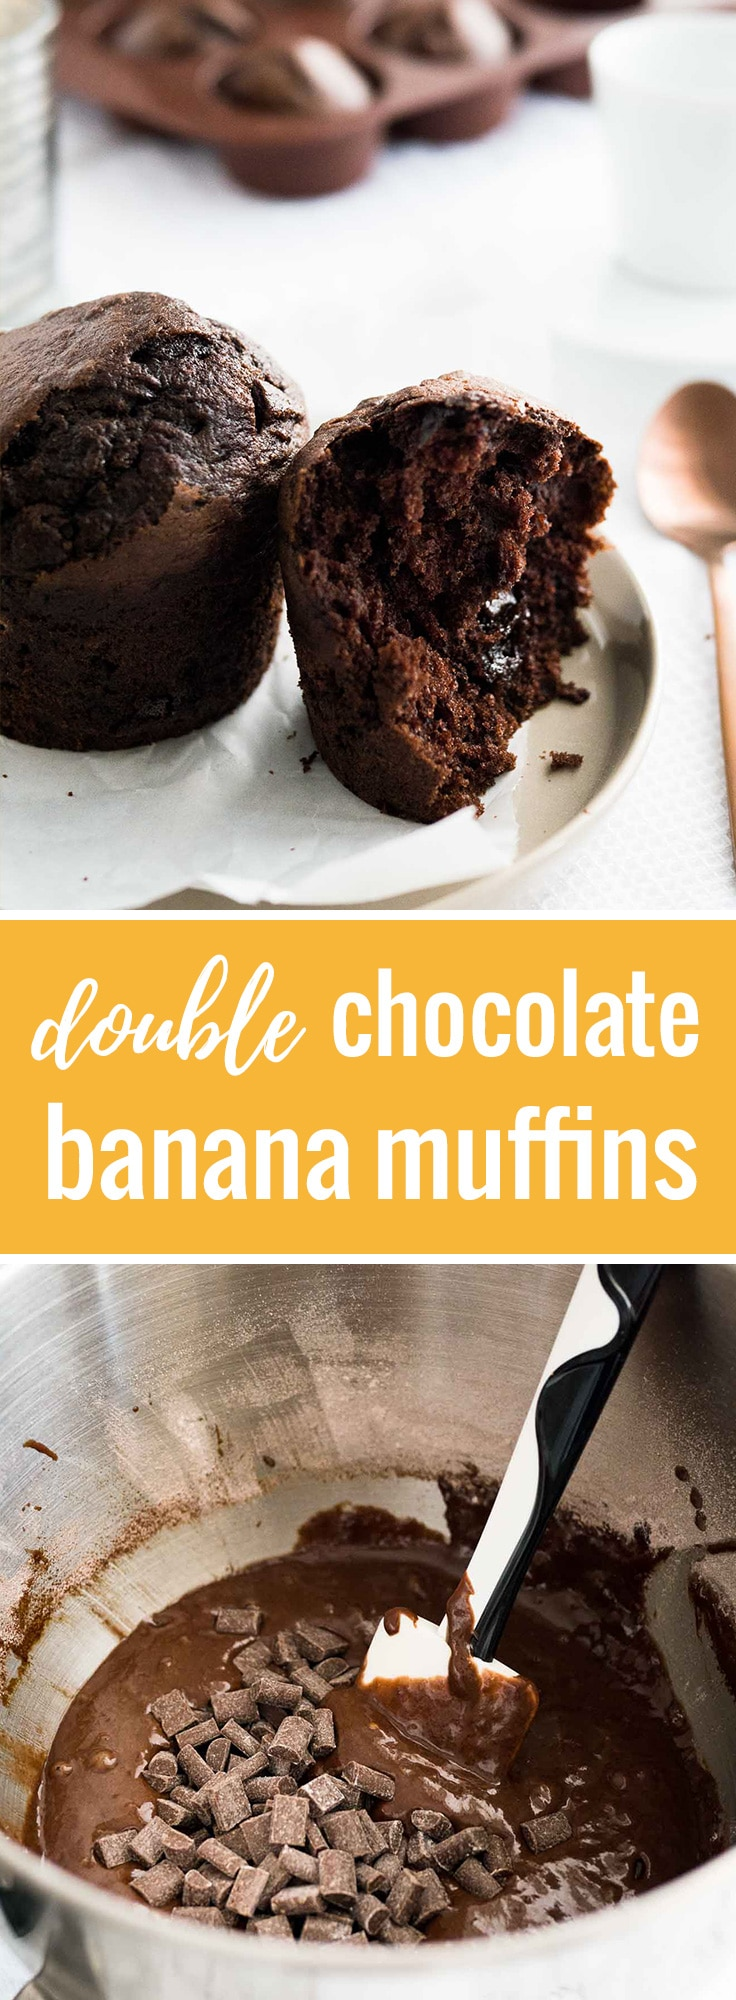 These Double Chocolate Banana Muffins are fluffy and delicious yet they're healthier than a typical bakery-style muffin! A great breakfast treat.